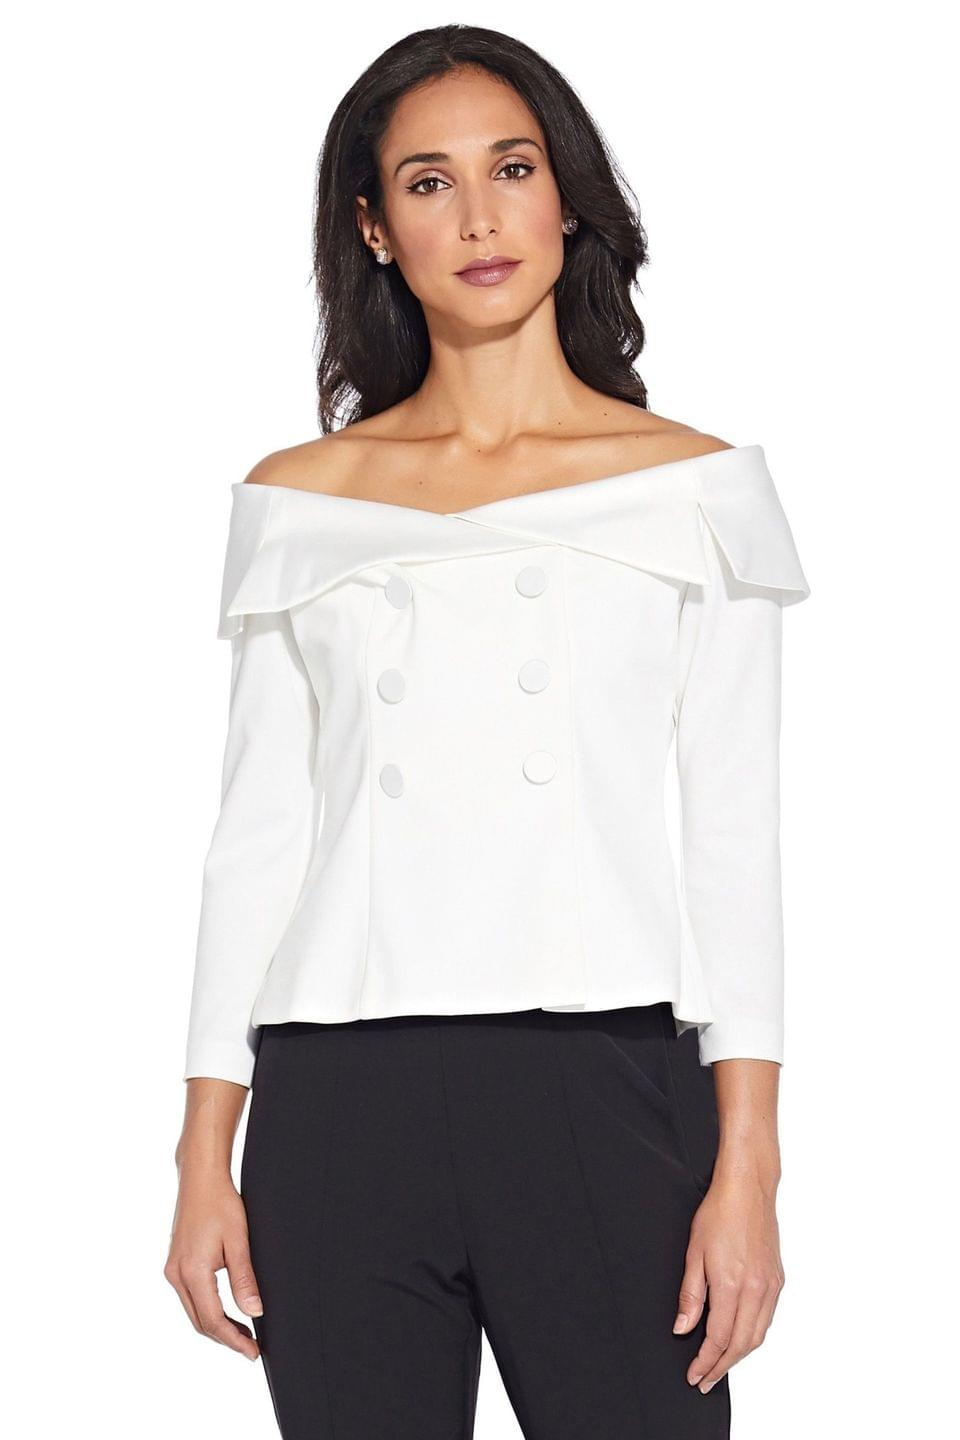 Women's Adrianna Papell White Charmuese Crepe Top